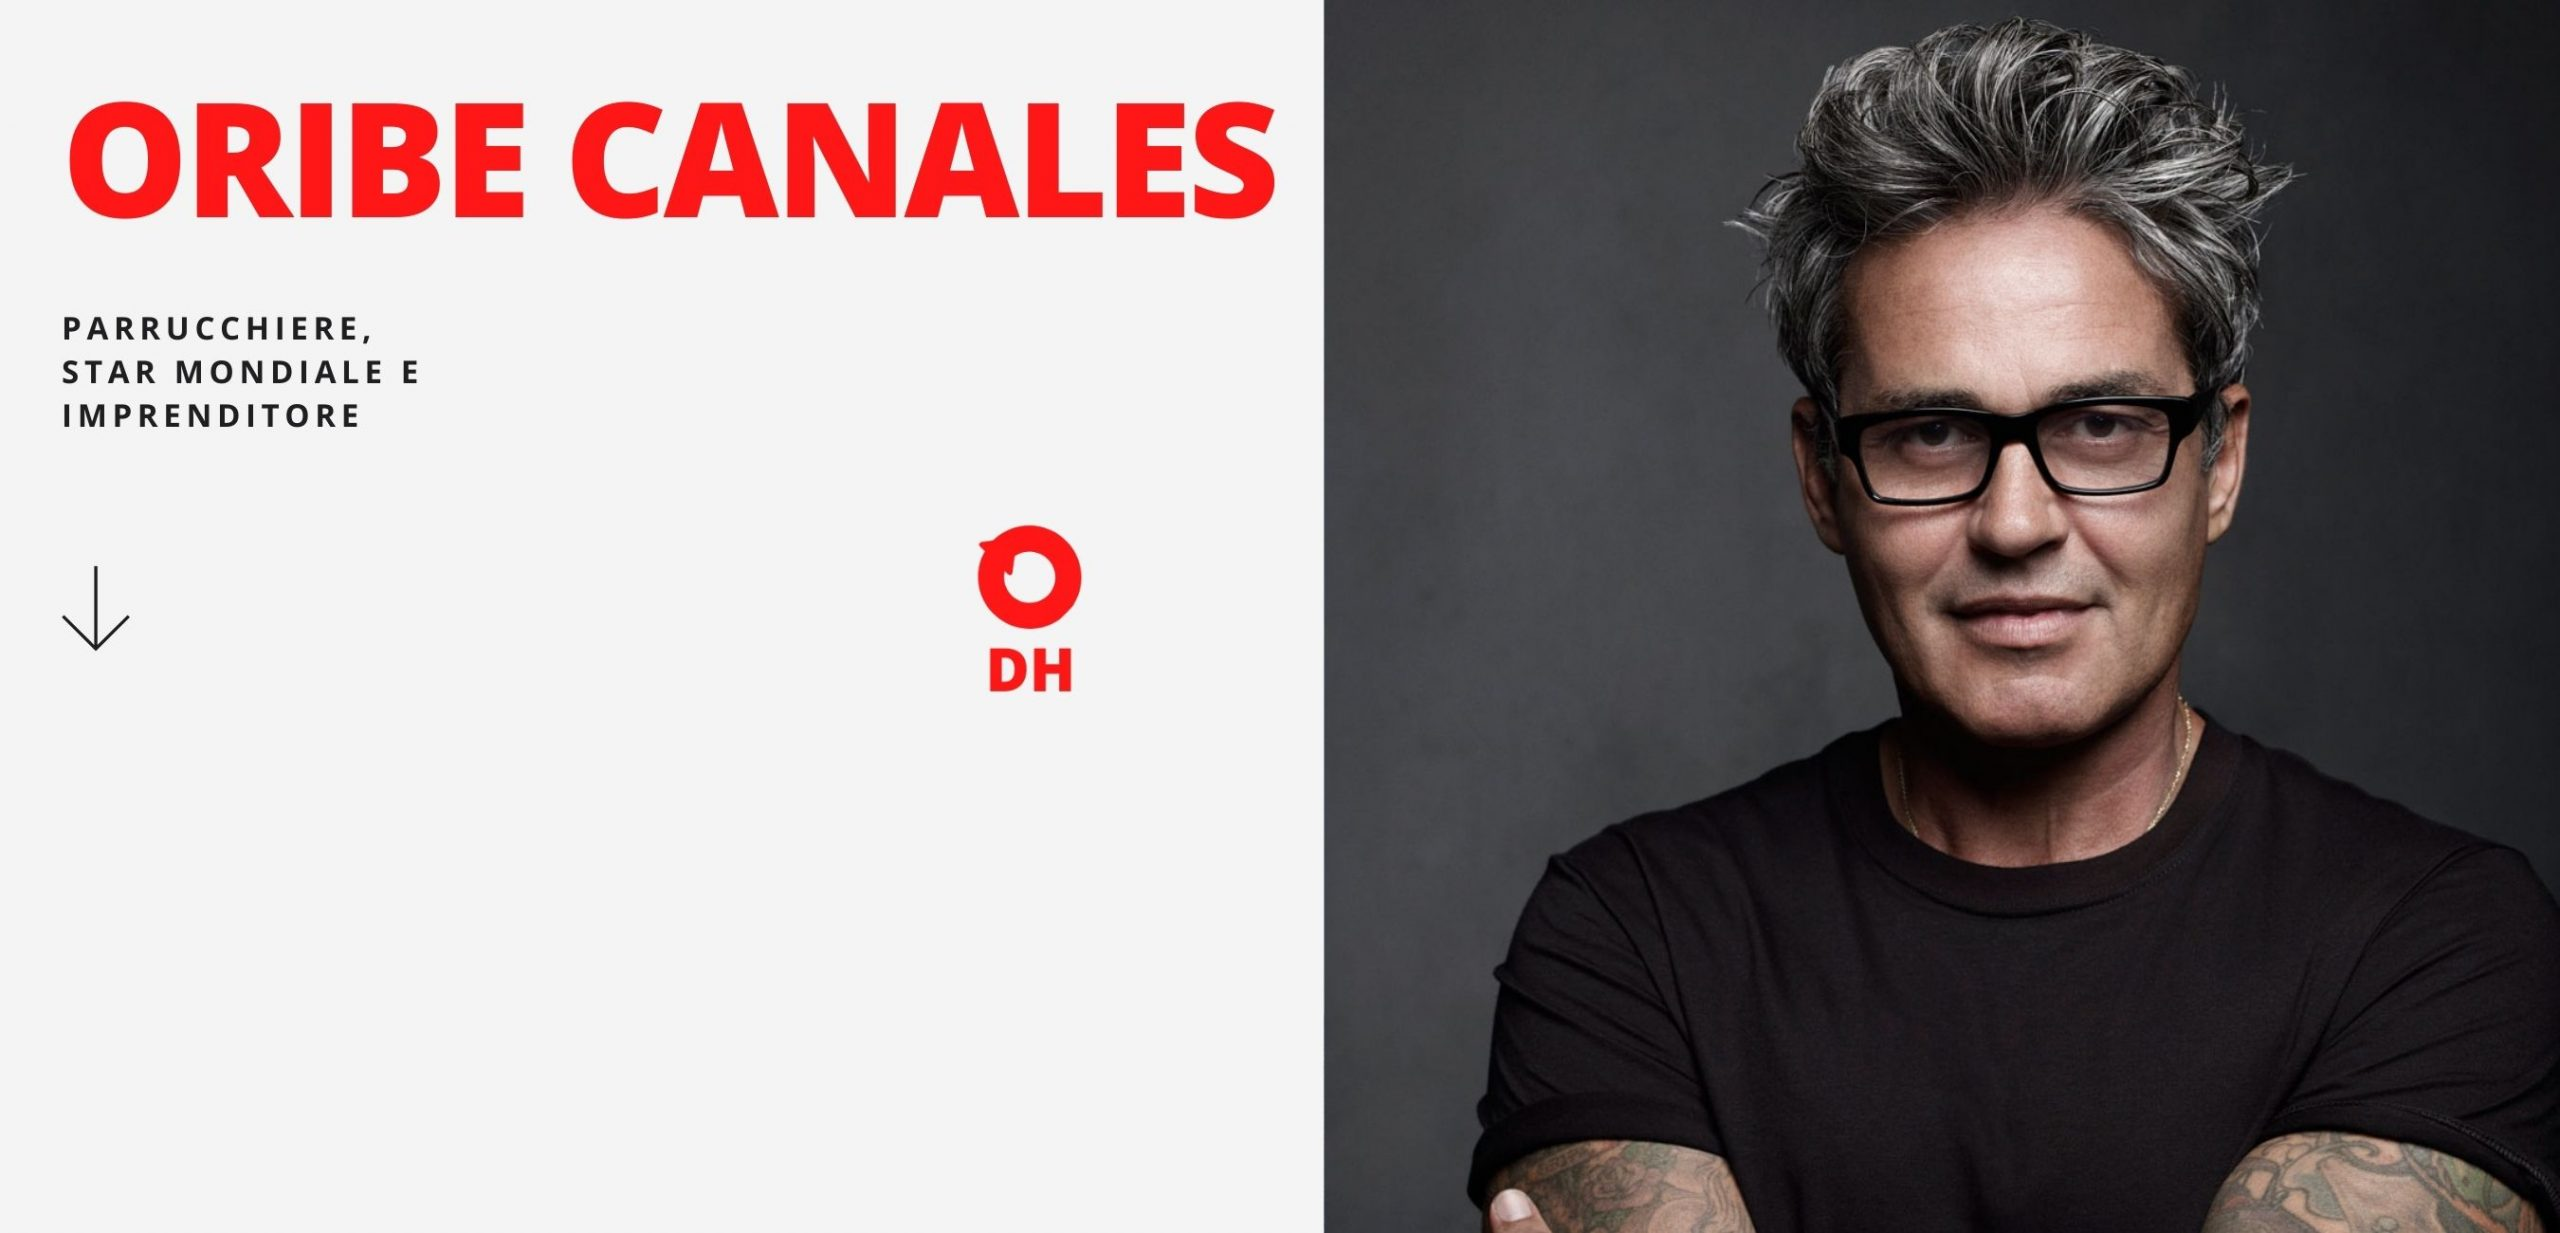 Oribe Canales